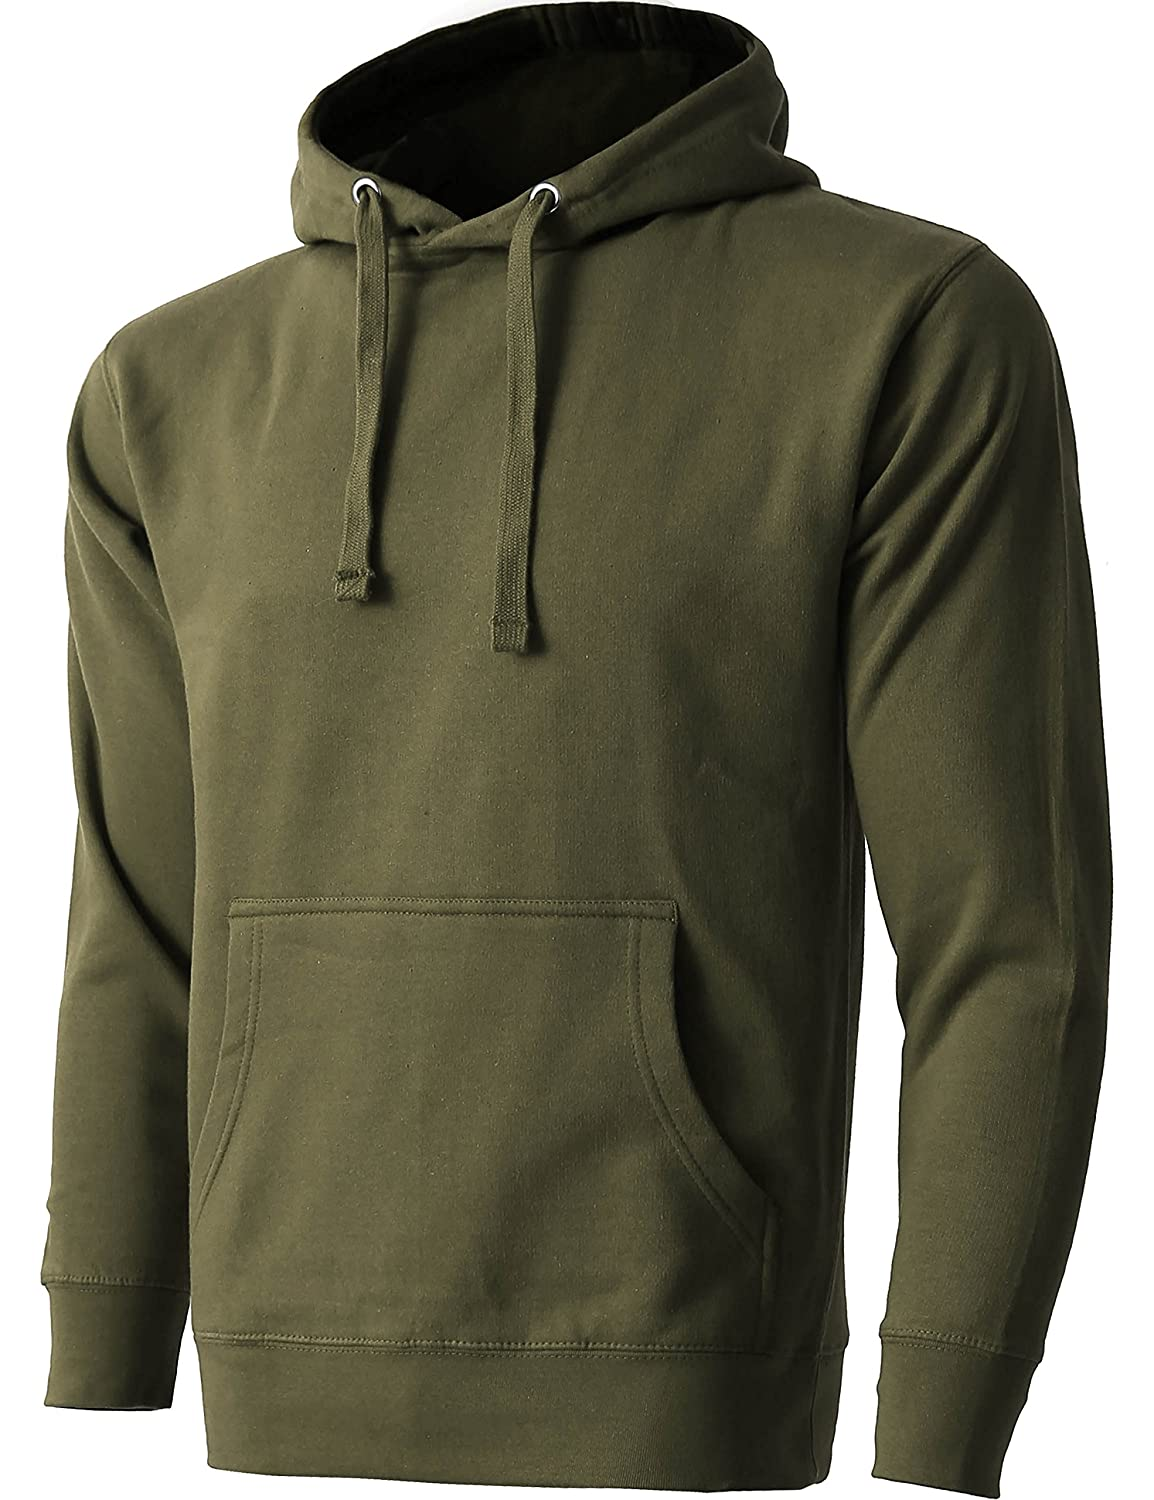 f05adf630 80% Premium Cotton/ 20% Polyester Machine Washable in cold; Tumble Dry Low  , Do Not Iron HC Mens Pullover Hoodie Sweatshirts Fitted Fleece Active  Casual ...